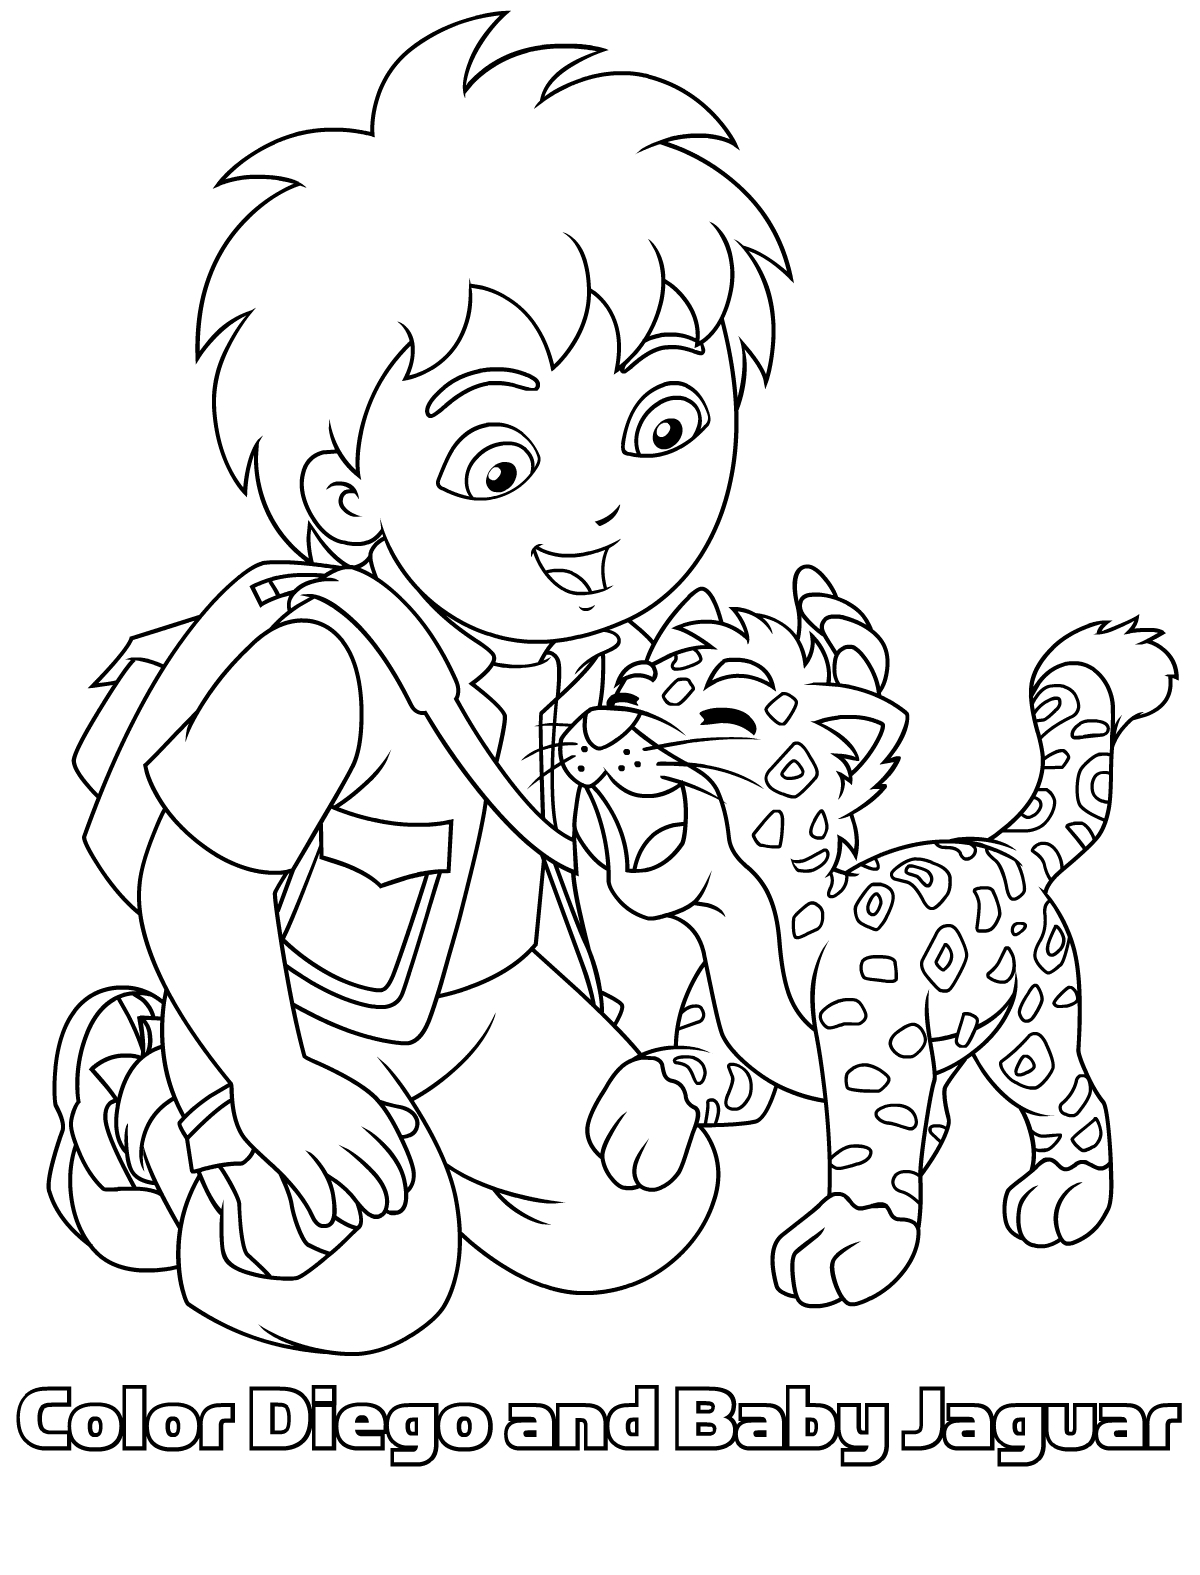 deigo coloring pages - photo#36